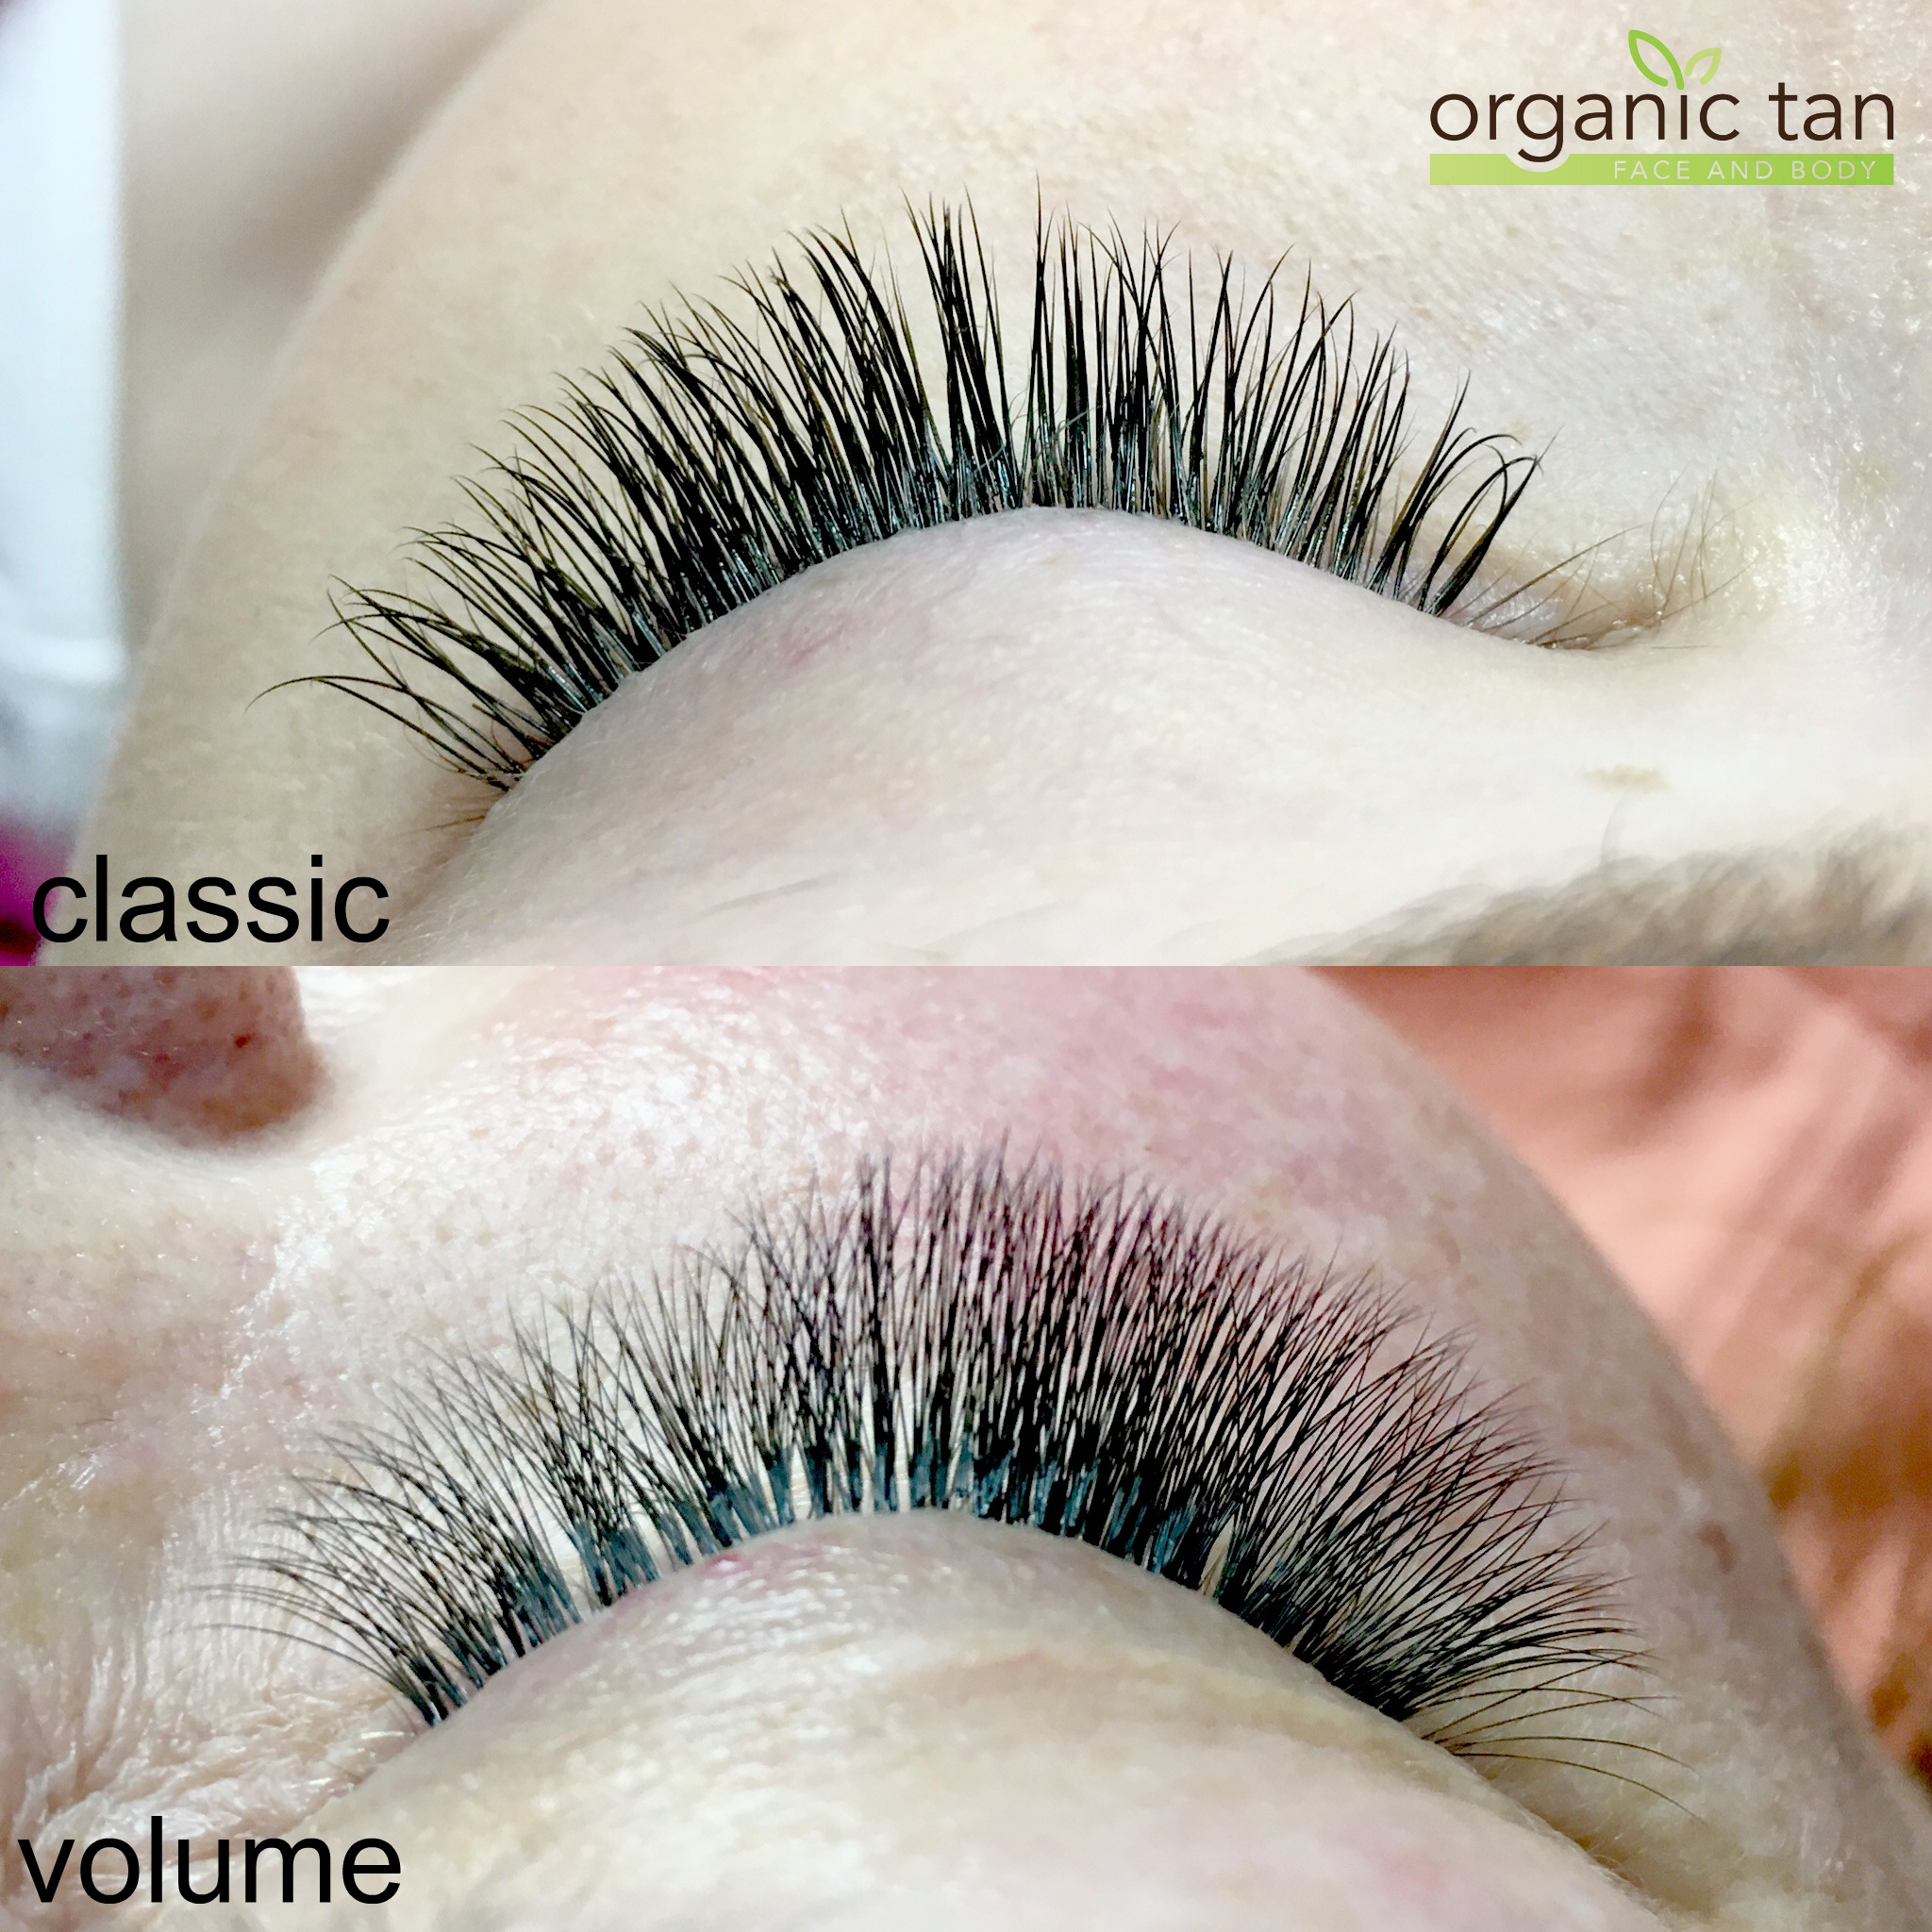 de25837d7b9 All lash technicians have full discretion on determining if you are a  viable candidate for receiving lash extensions. This includes if you have a  different ...